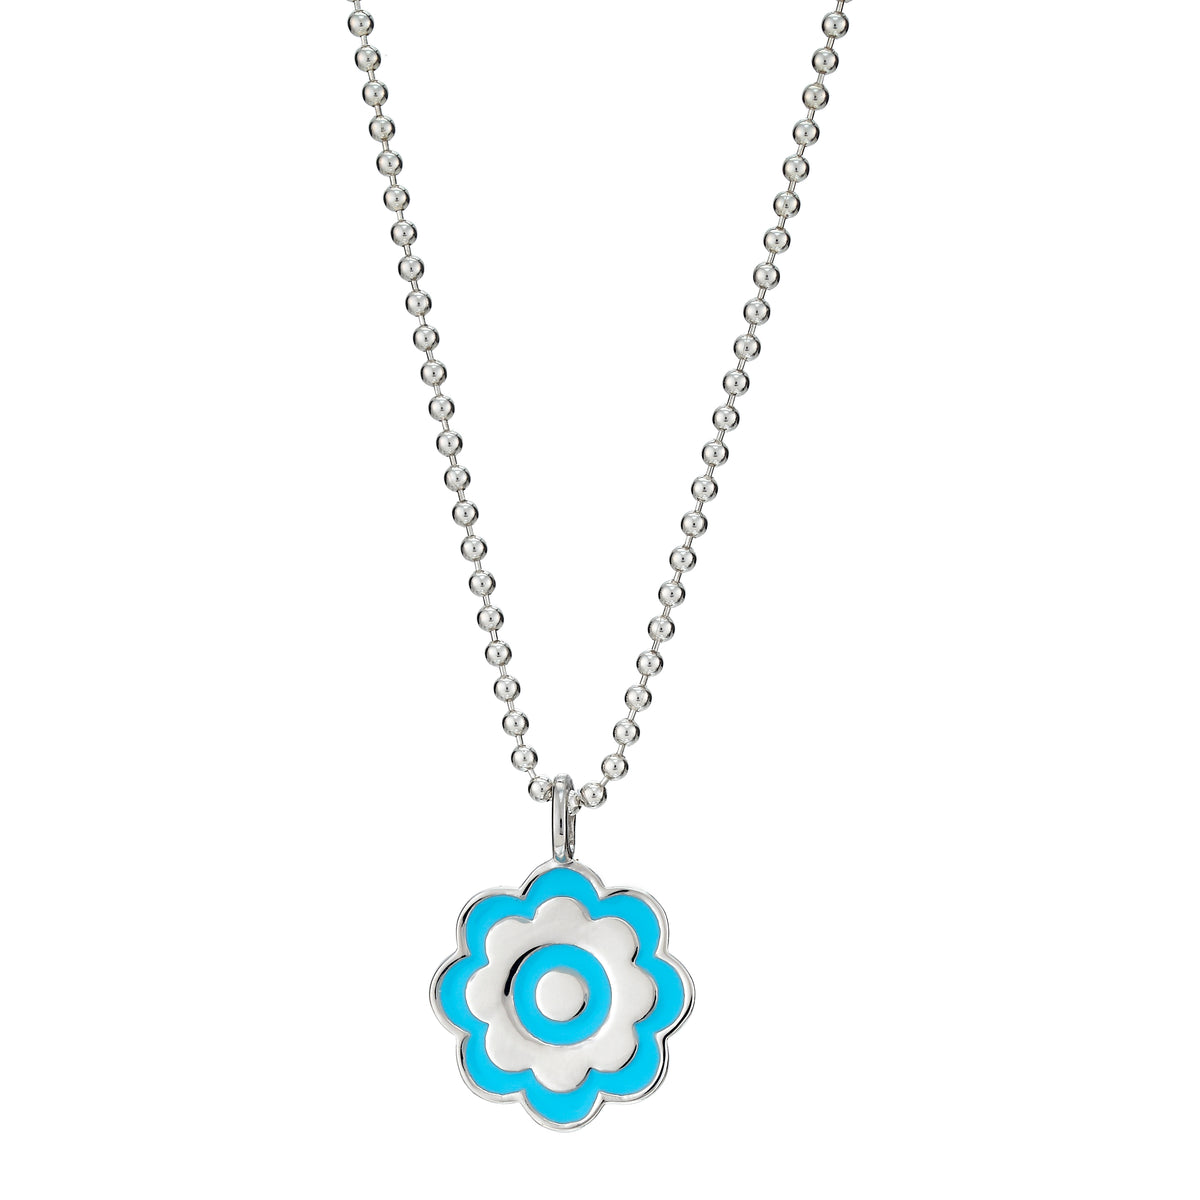 Petite Silver Flower Necklace